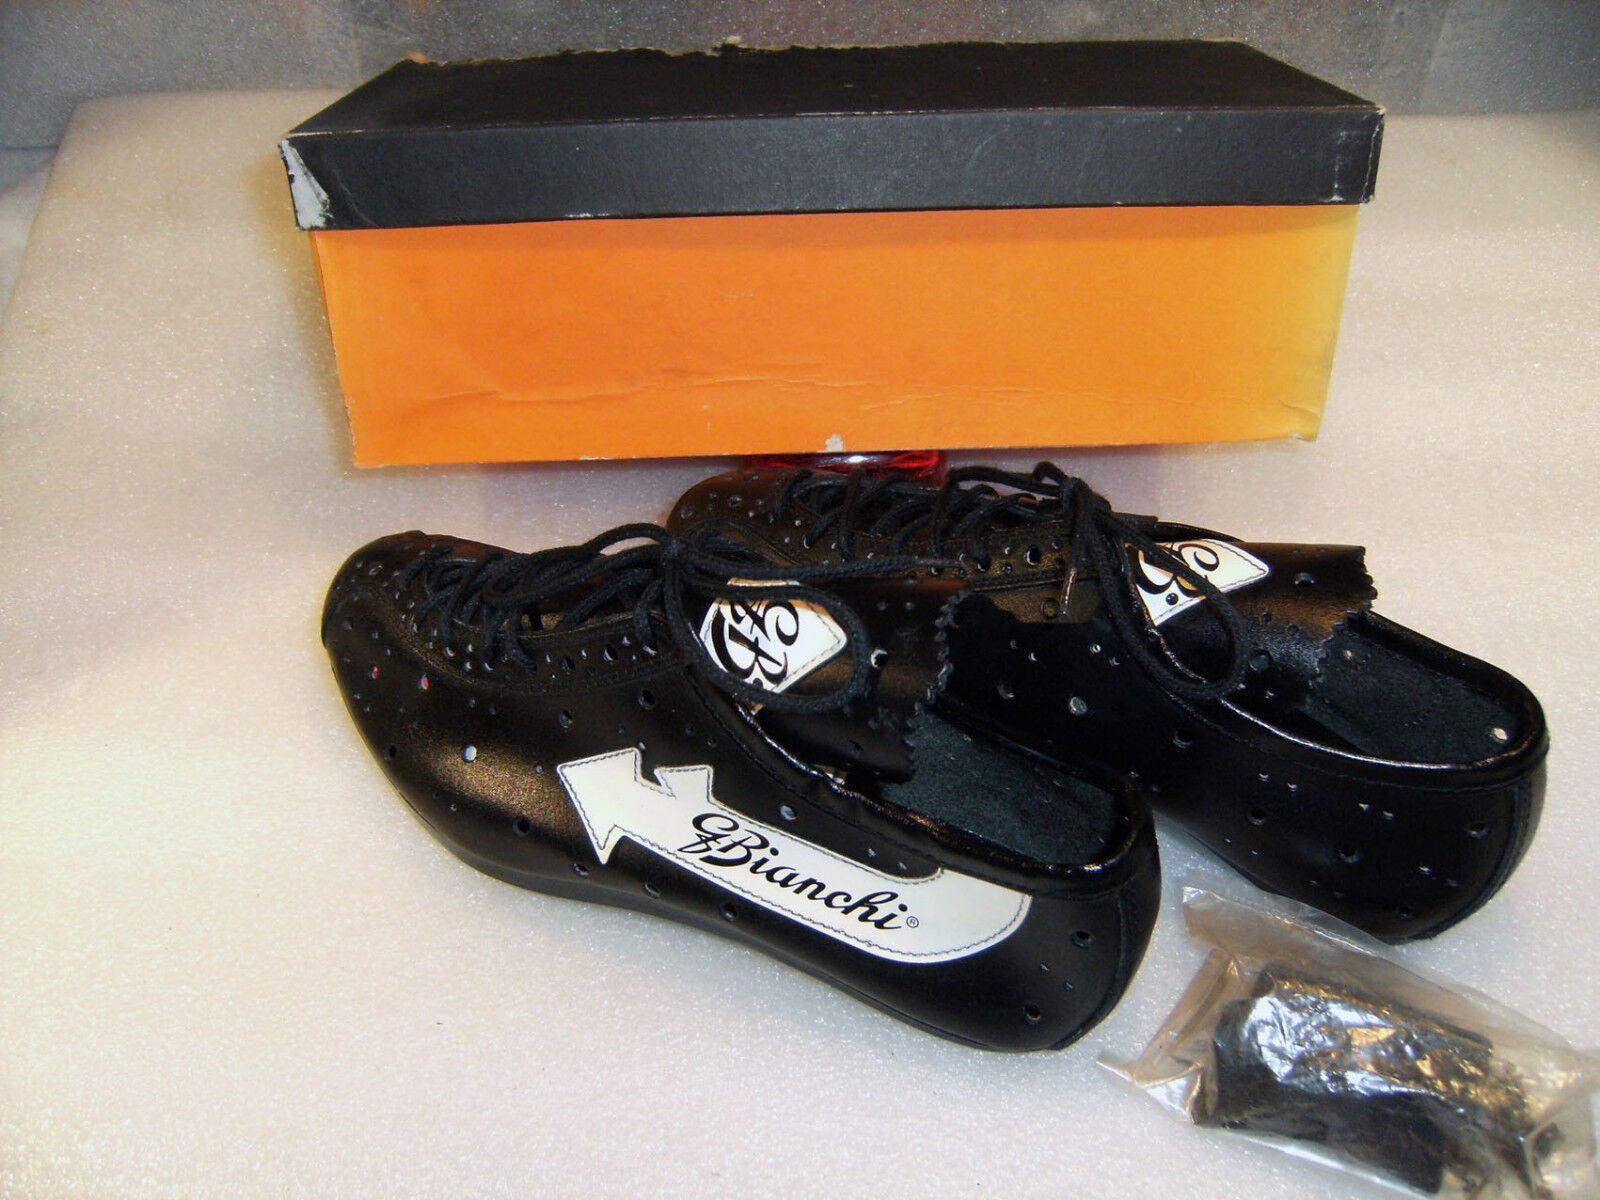 Vintage   NOS  BIAN  LEATHER SHOES, EU SIZE 38, with clips, in Box.  customers first